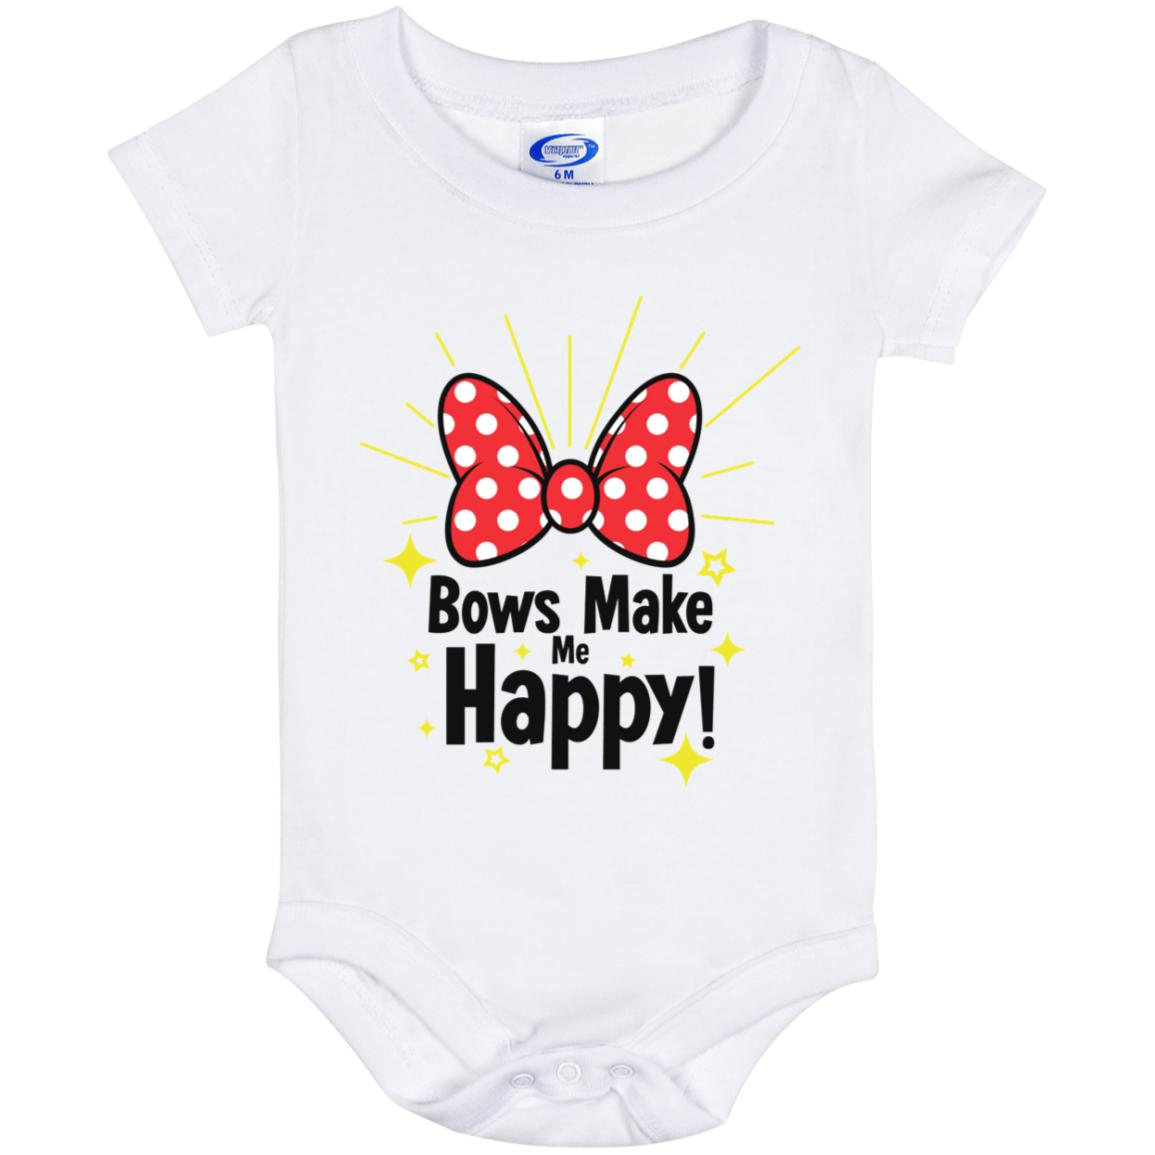 Bows Make Me Happy - Baby Onesie 6 Month